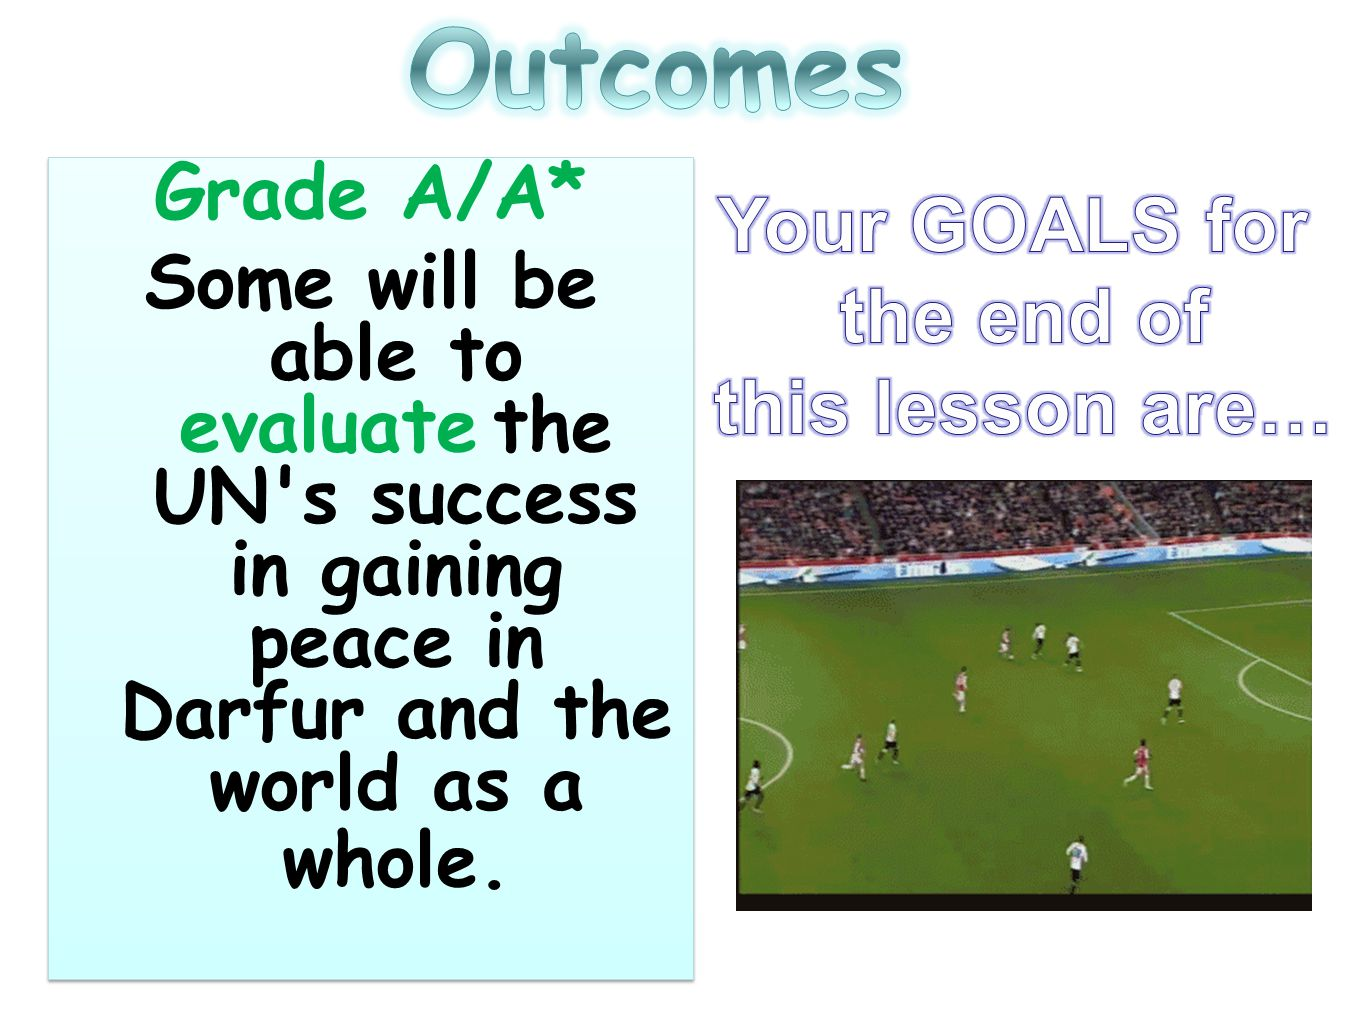 Grade A/A* Some will be able to evaluate the UN s success in gaining peace in Darfur and the world as a whole.